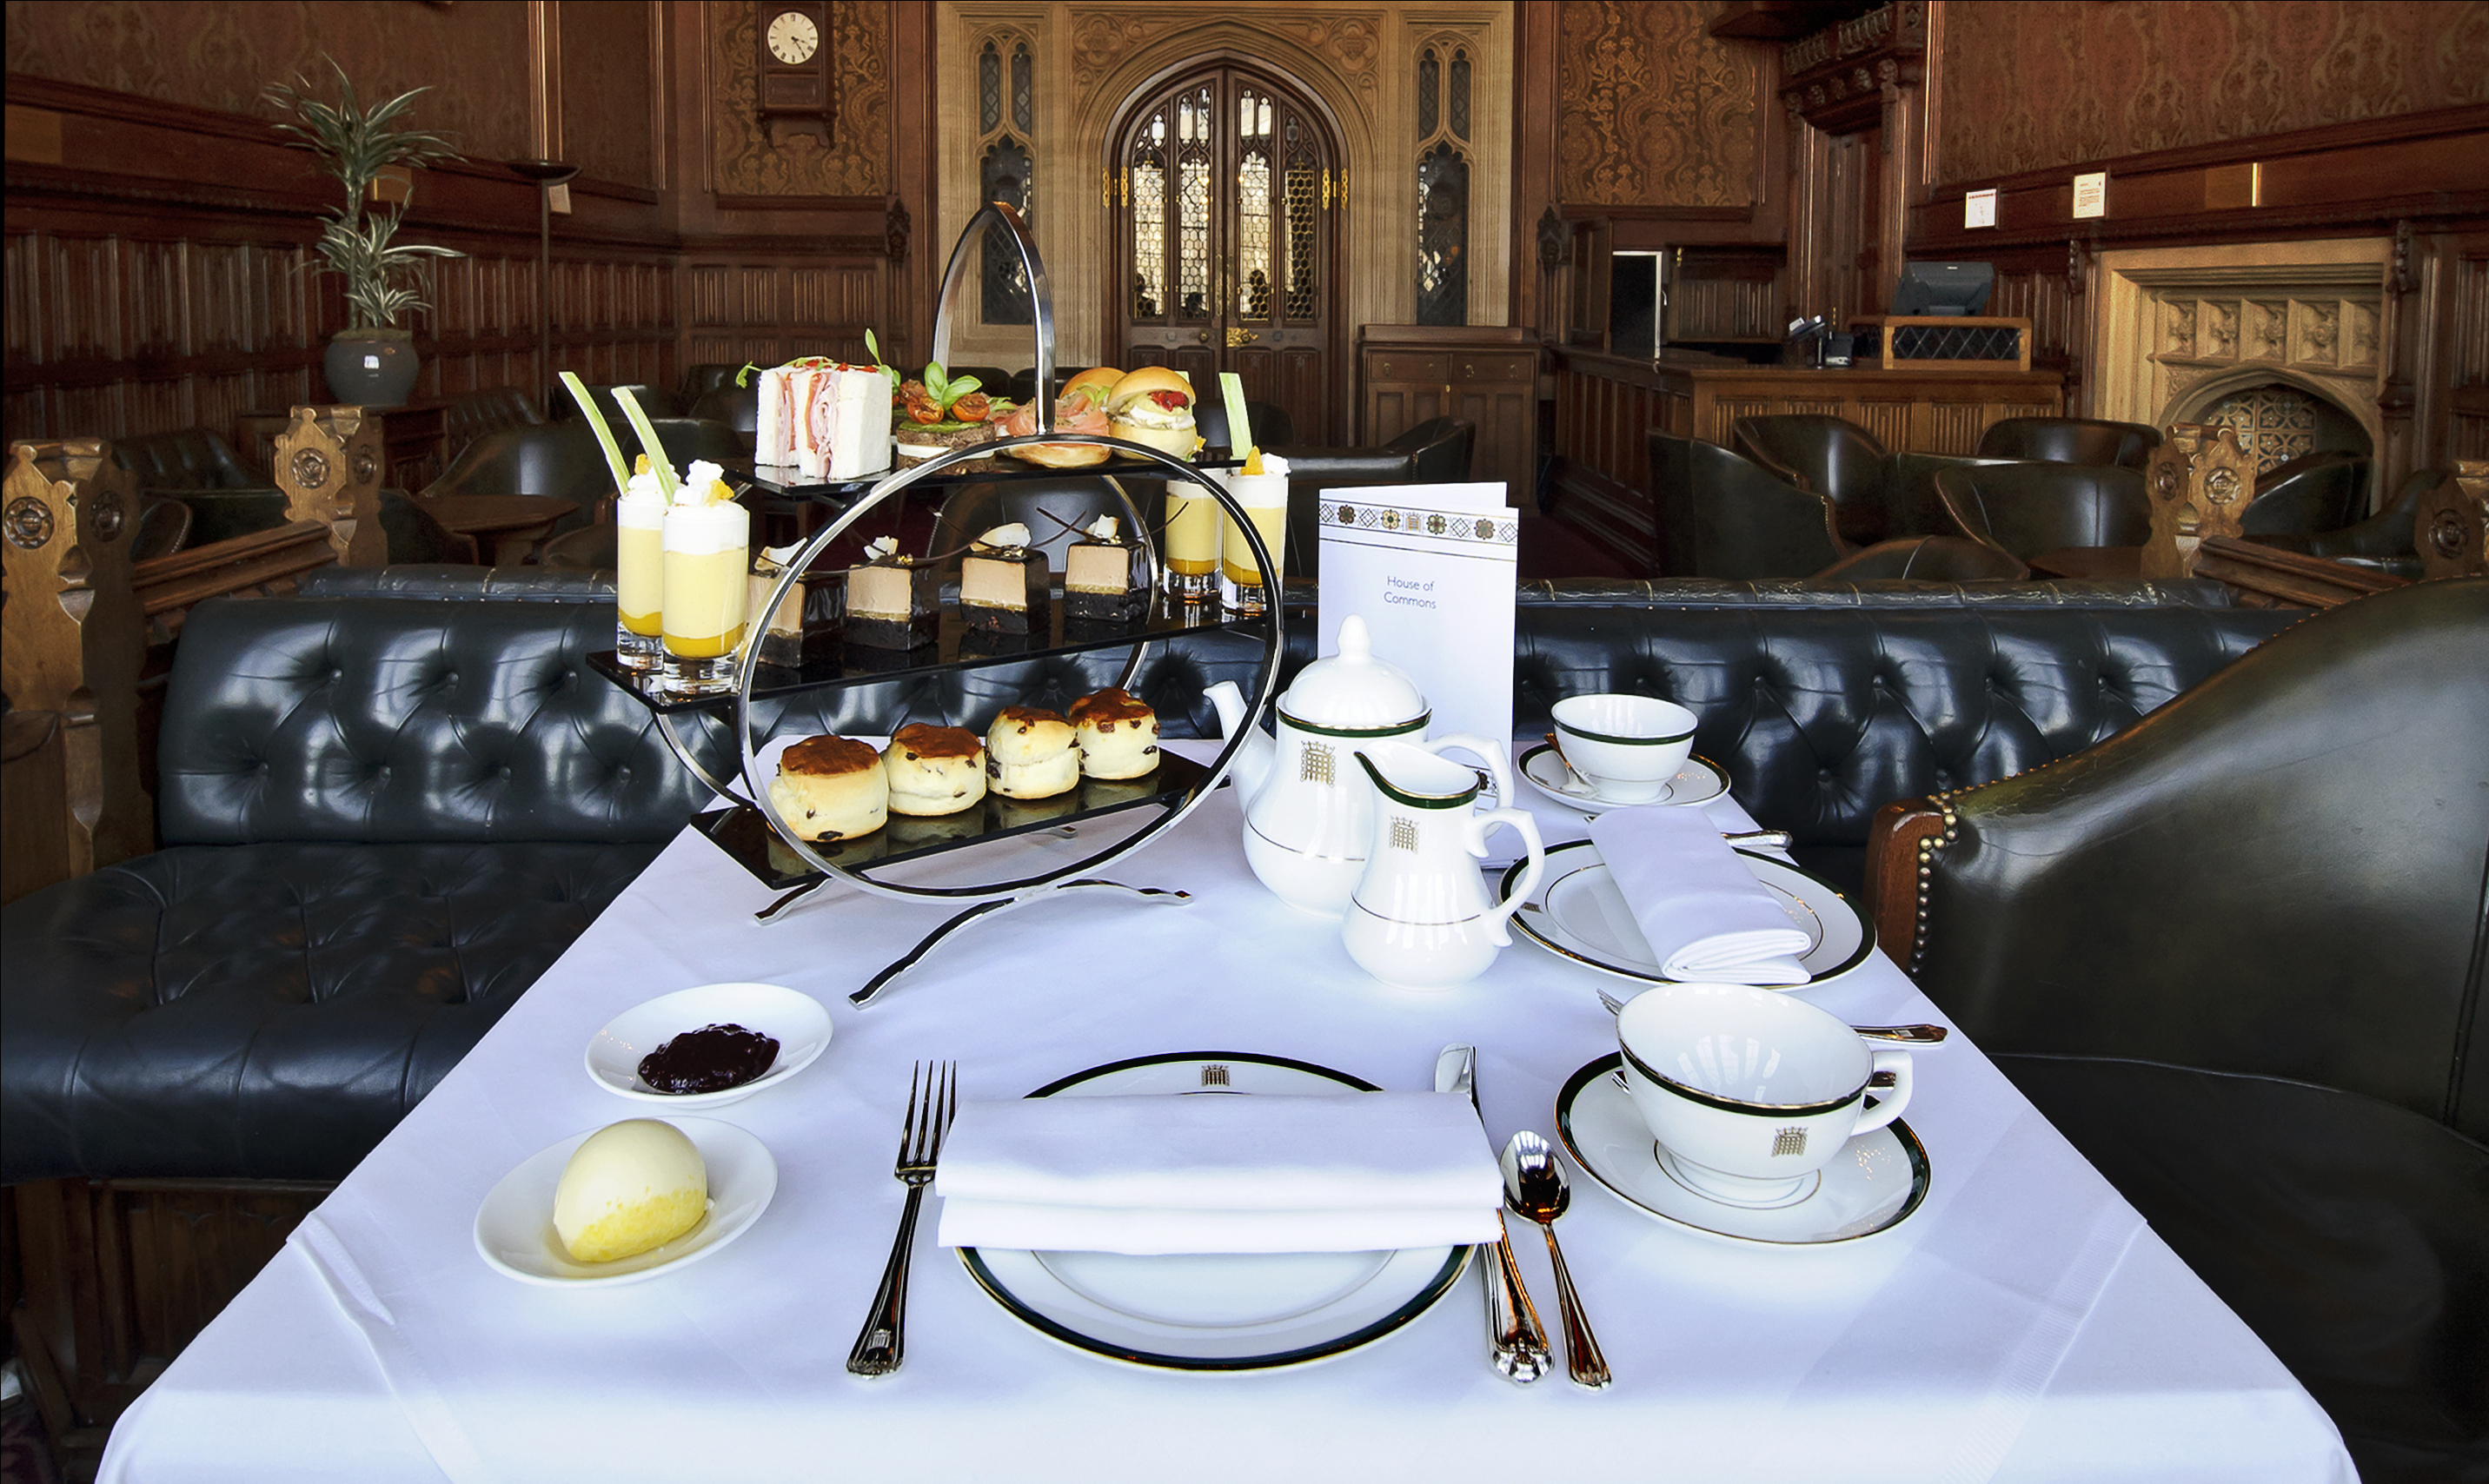 Take afternoon tea at the Houses of Parliament